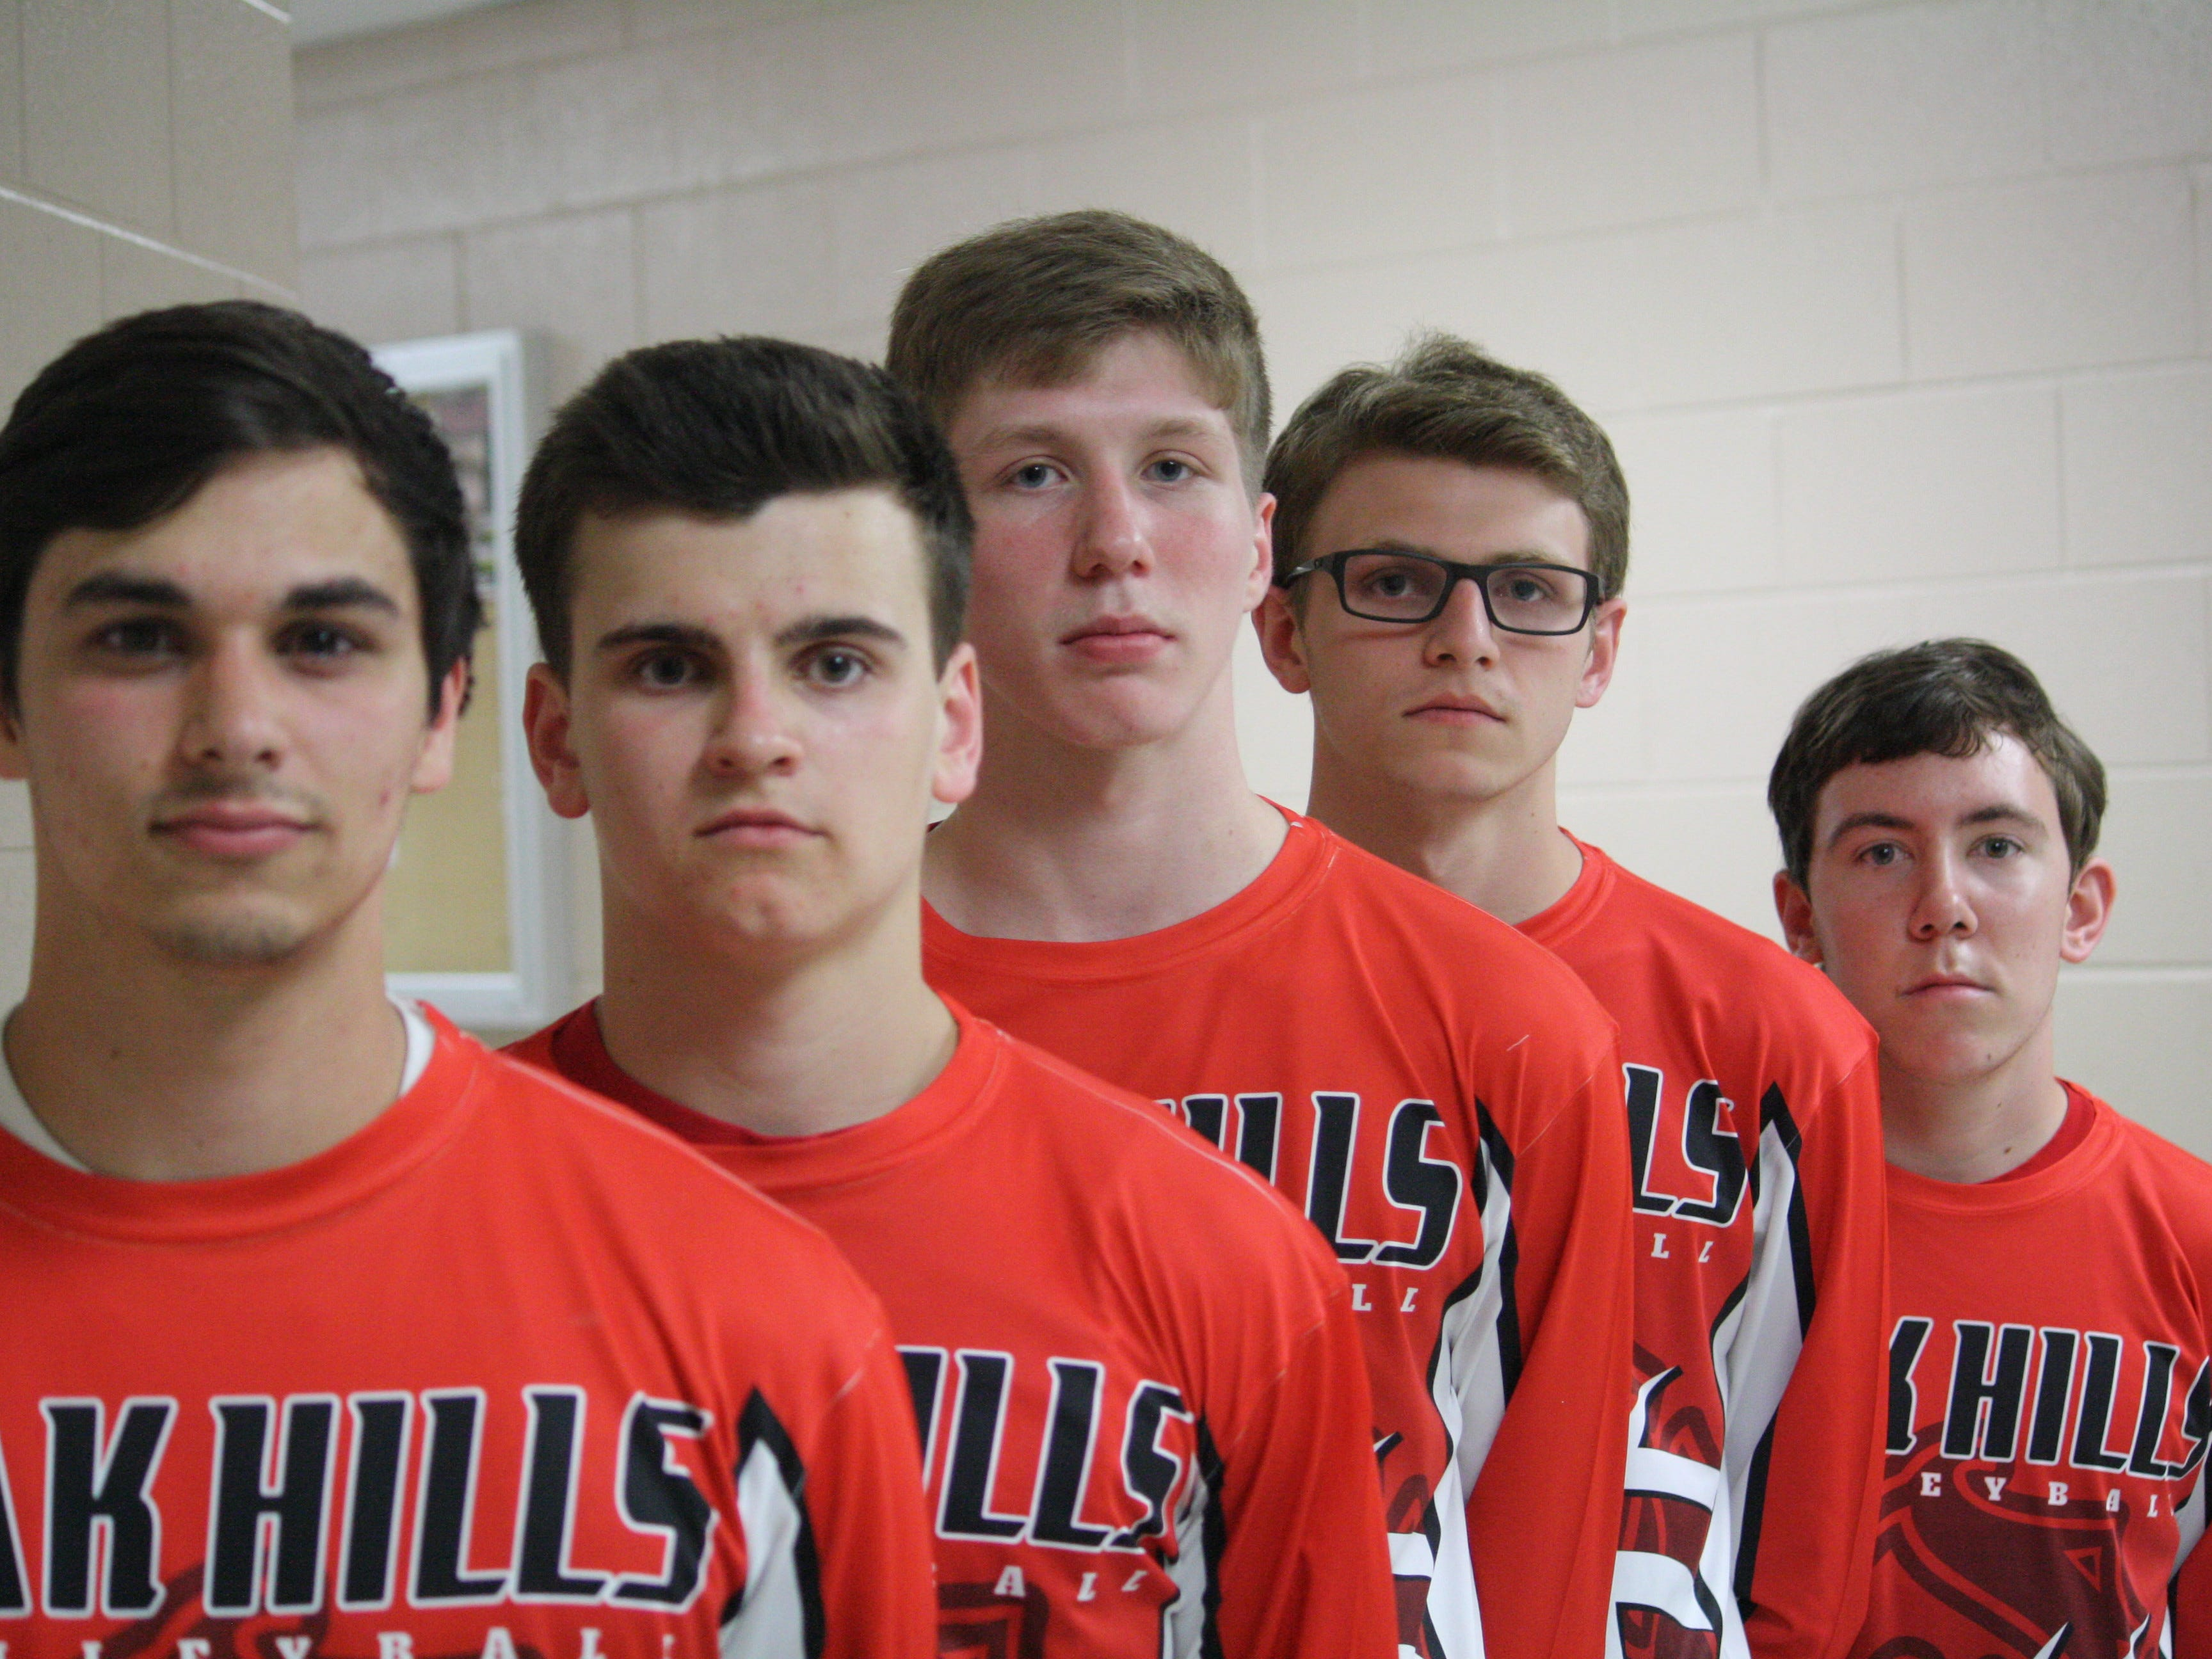 Oak Hills senior volleyball players, from the front, Eric Schneider, Alec Krummen, Tim Laib, Dylan Miller and Randy Hager get together April 16 before facing Mason.